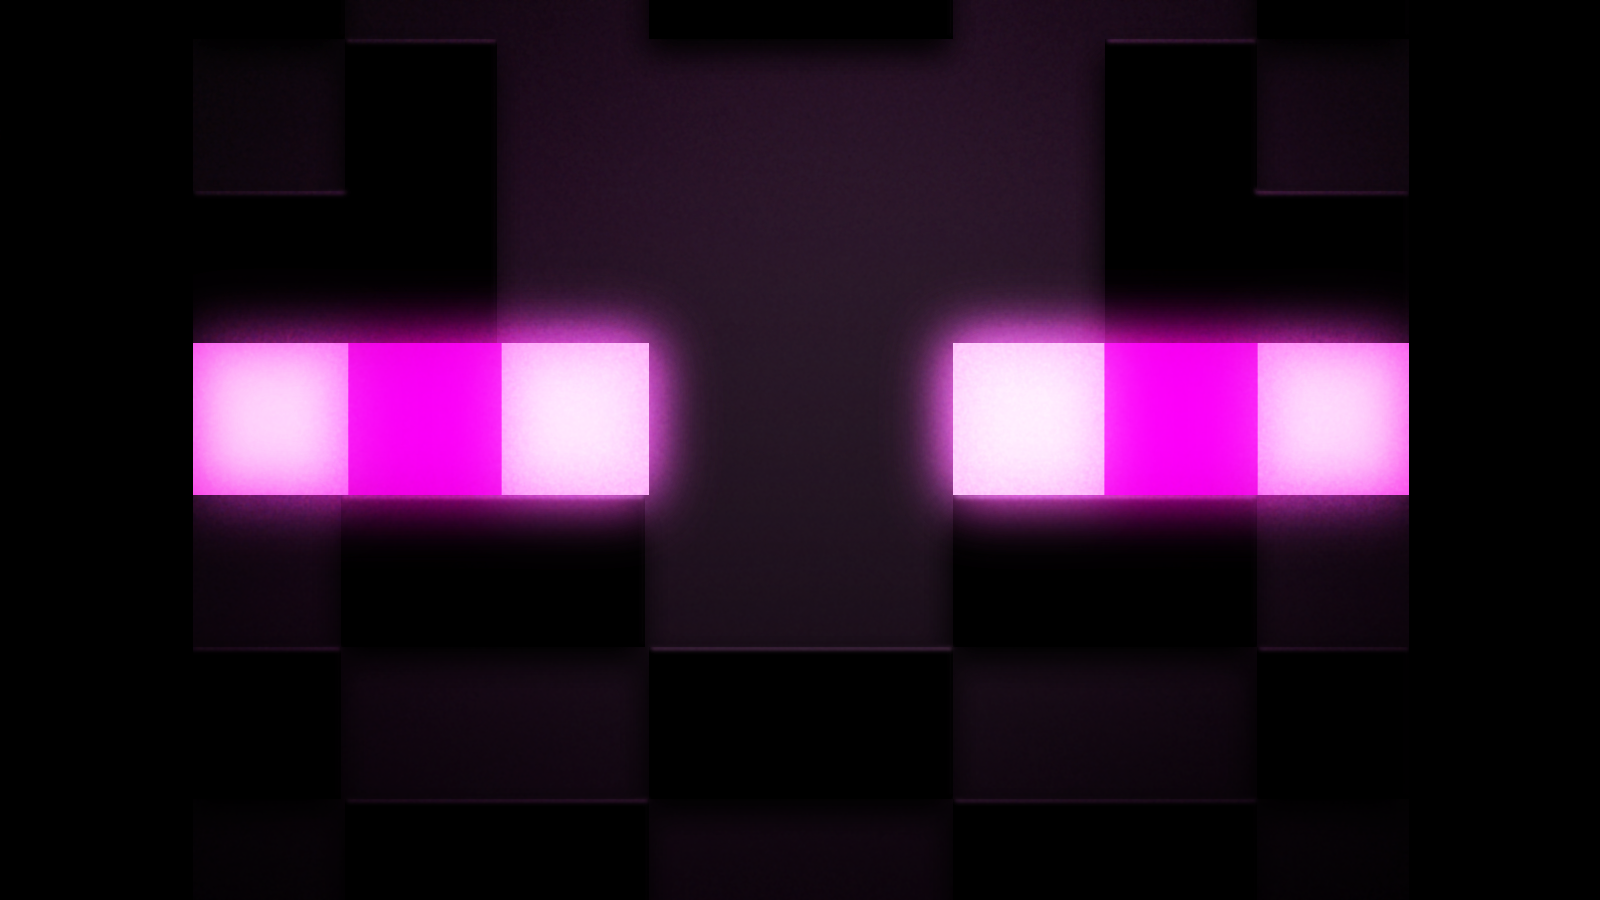 Displaying (19) Gallery Images For Minecraft Enderman Wallpaper... Minecraft Diamond Wallpaper 1920x1080